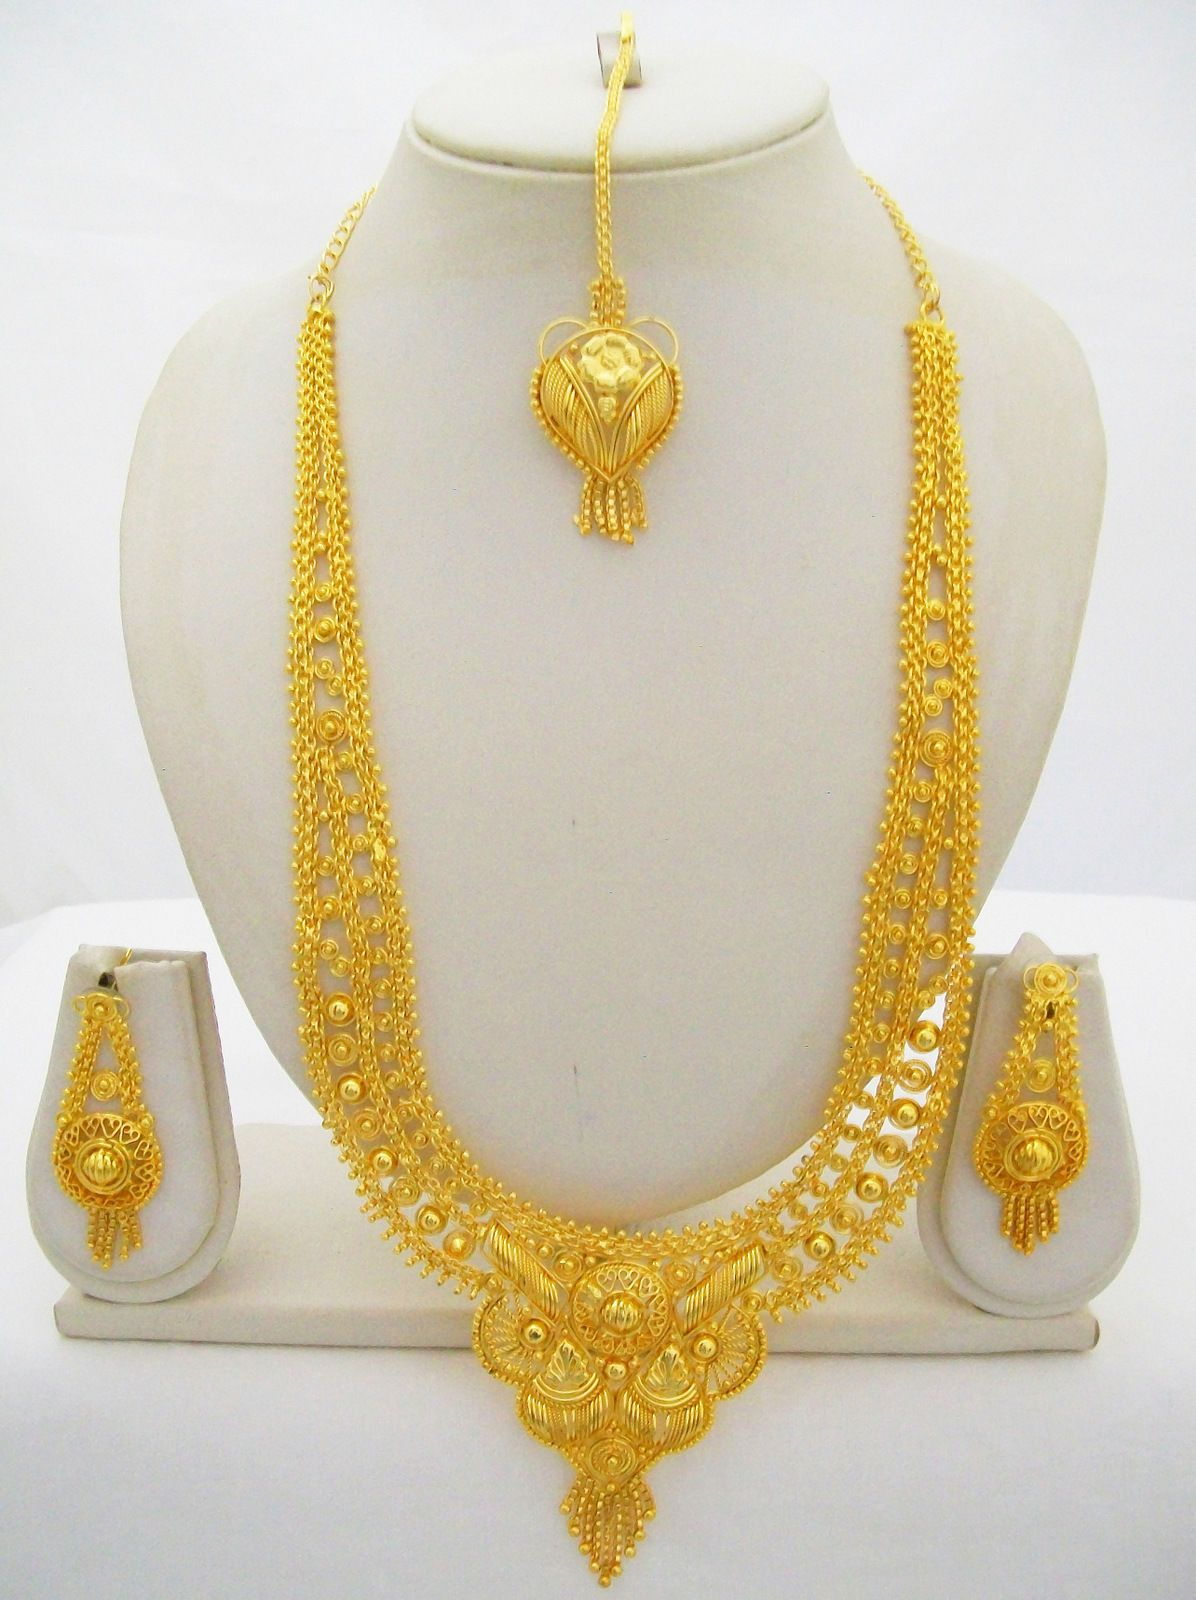 Gold rani haar pictures to pin on pinterest - Indian Gold Plated Rani Haar Long Necklace Filigree Sari Fashion Jewelry Set